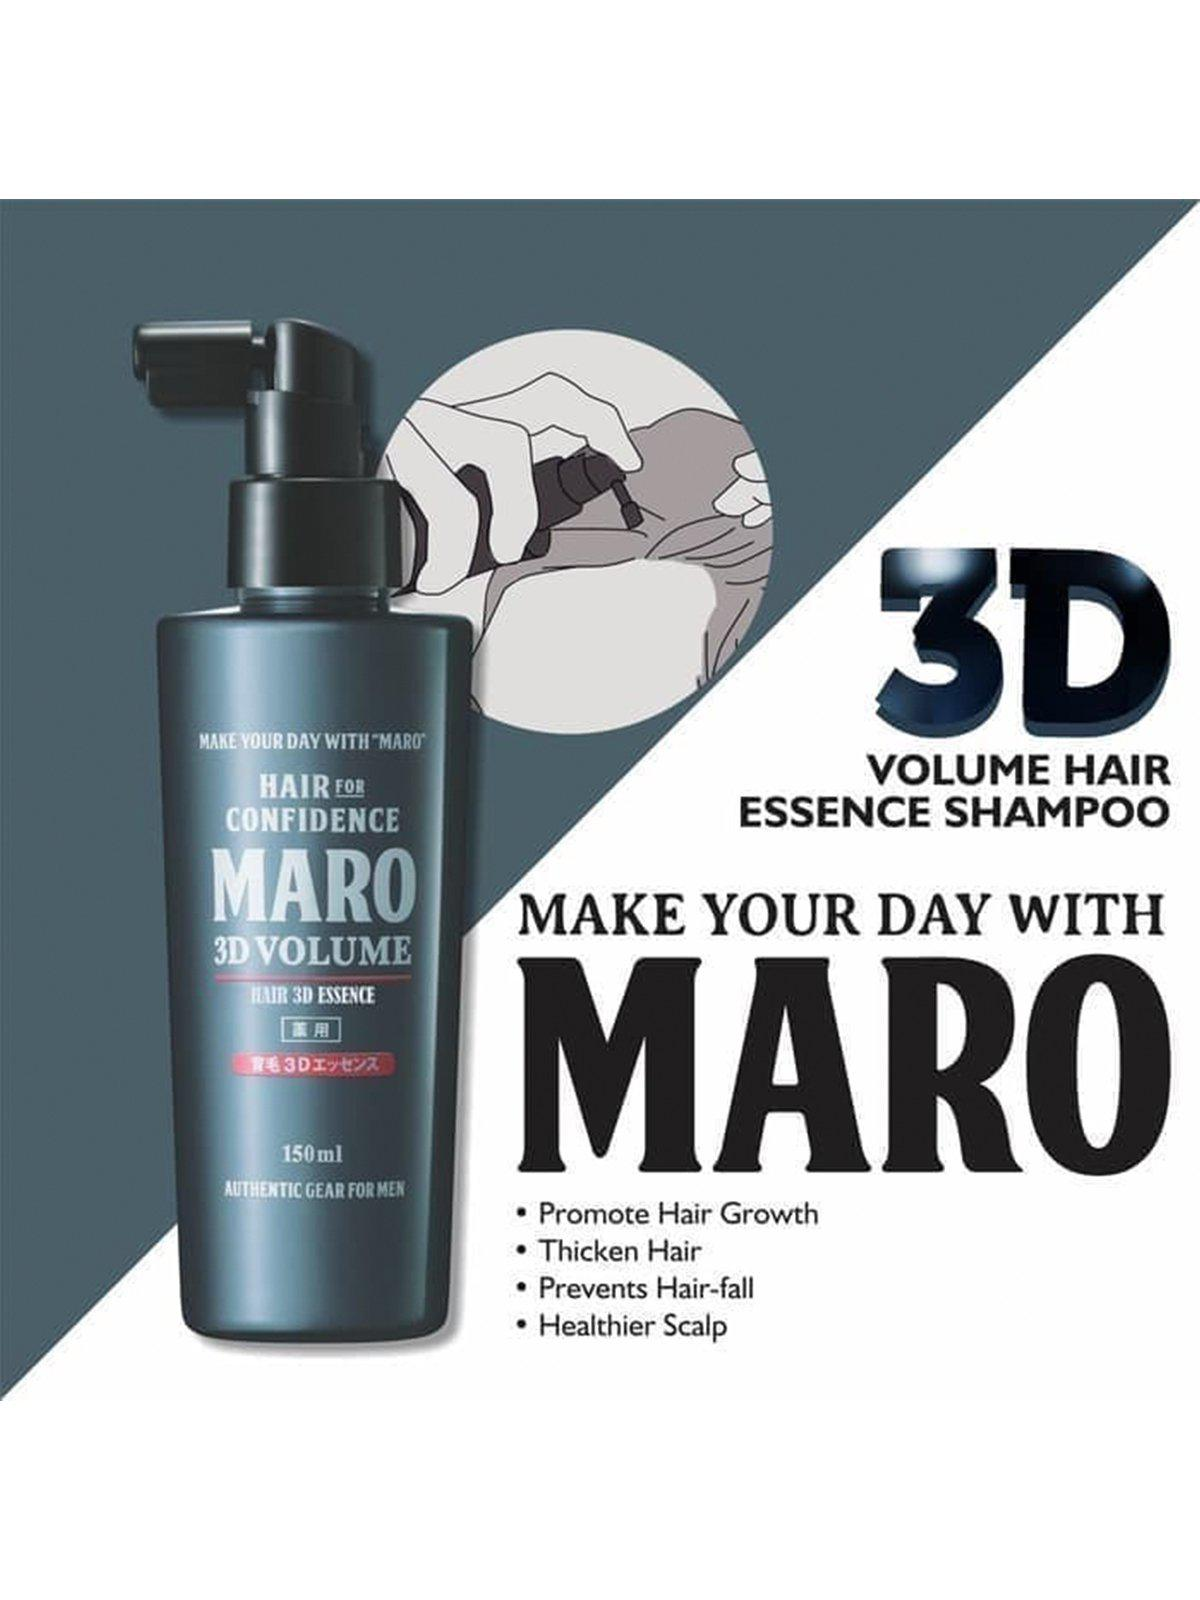 MARO 3D Volume Hair Essence 150ml - MORE by Morello - Indonesia